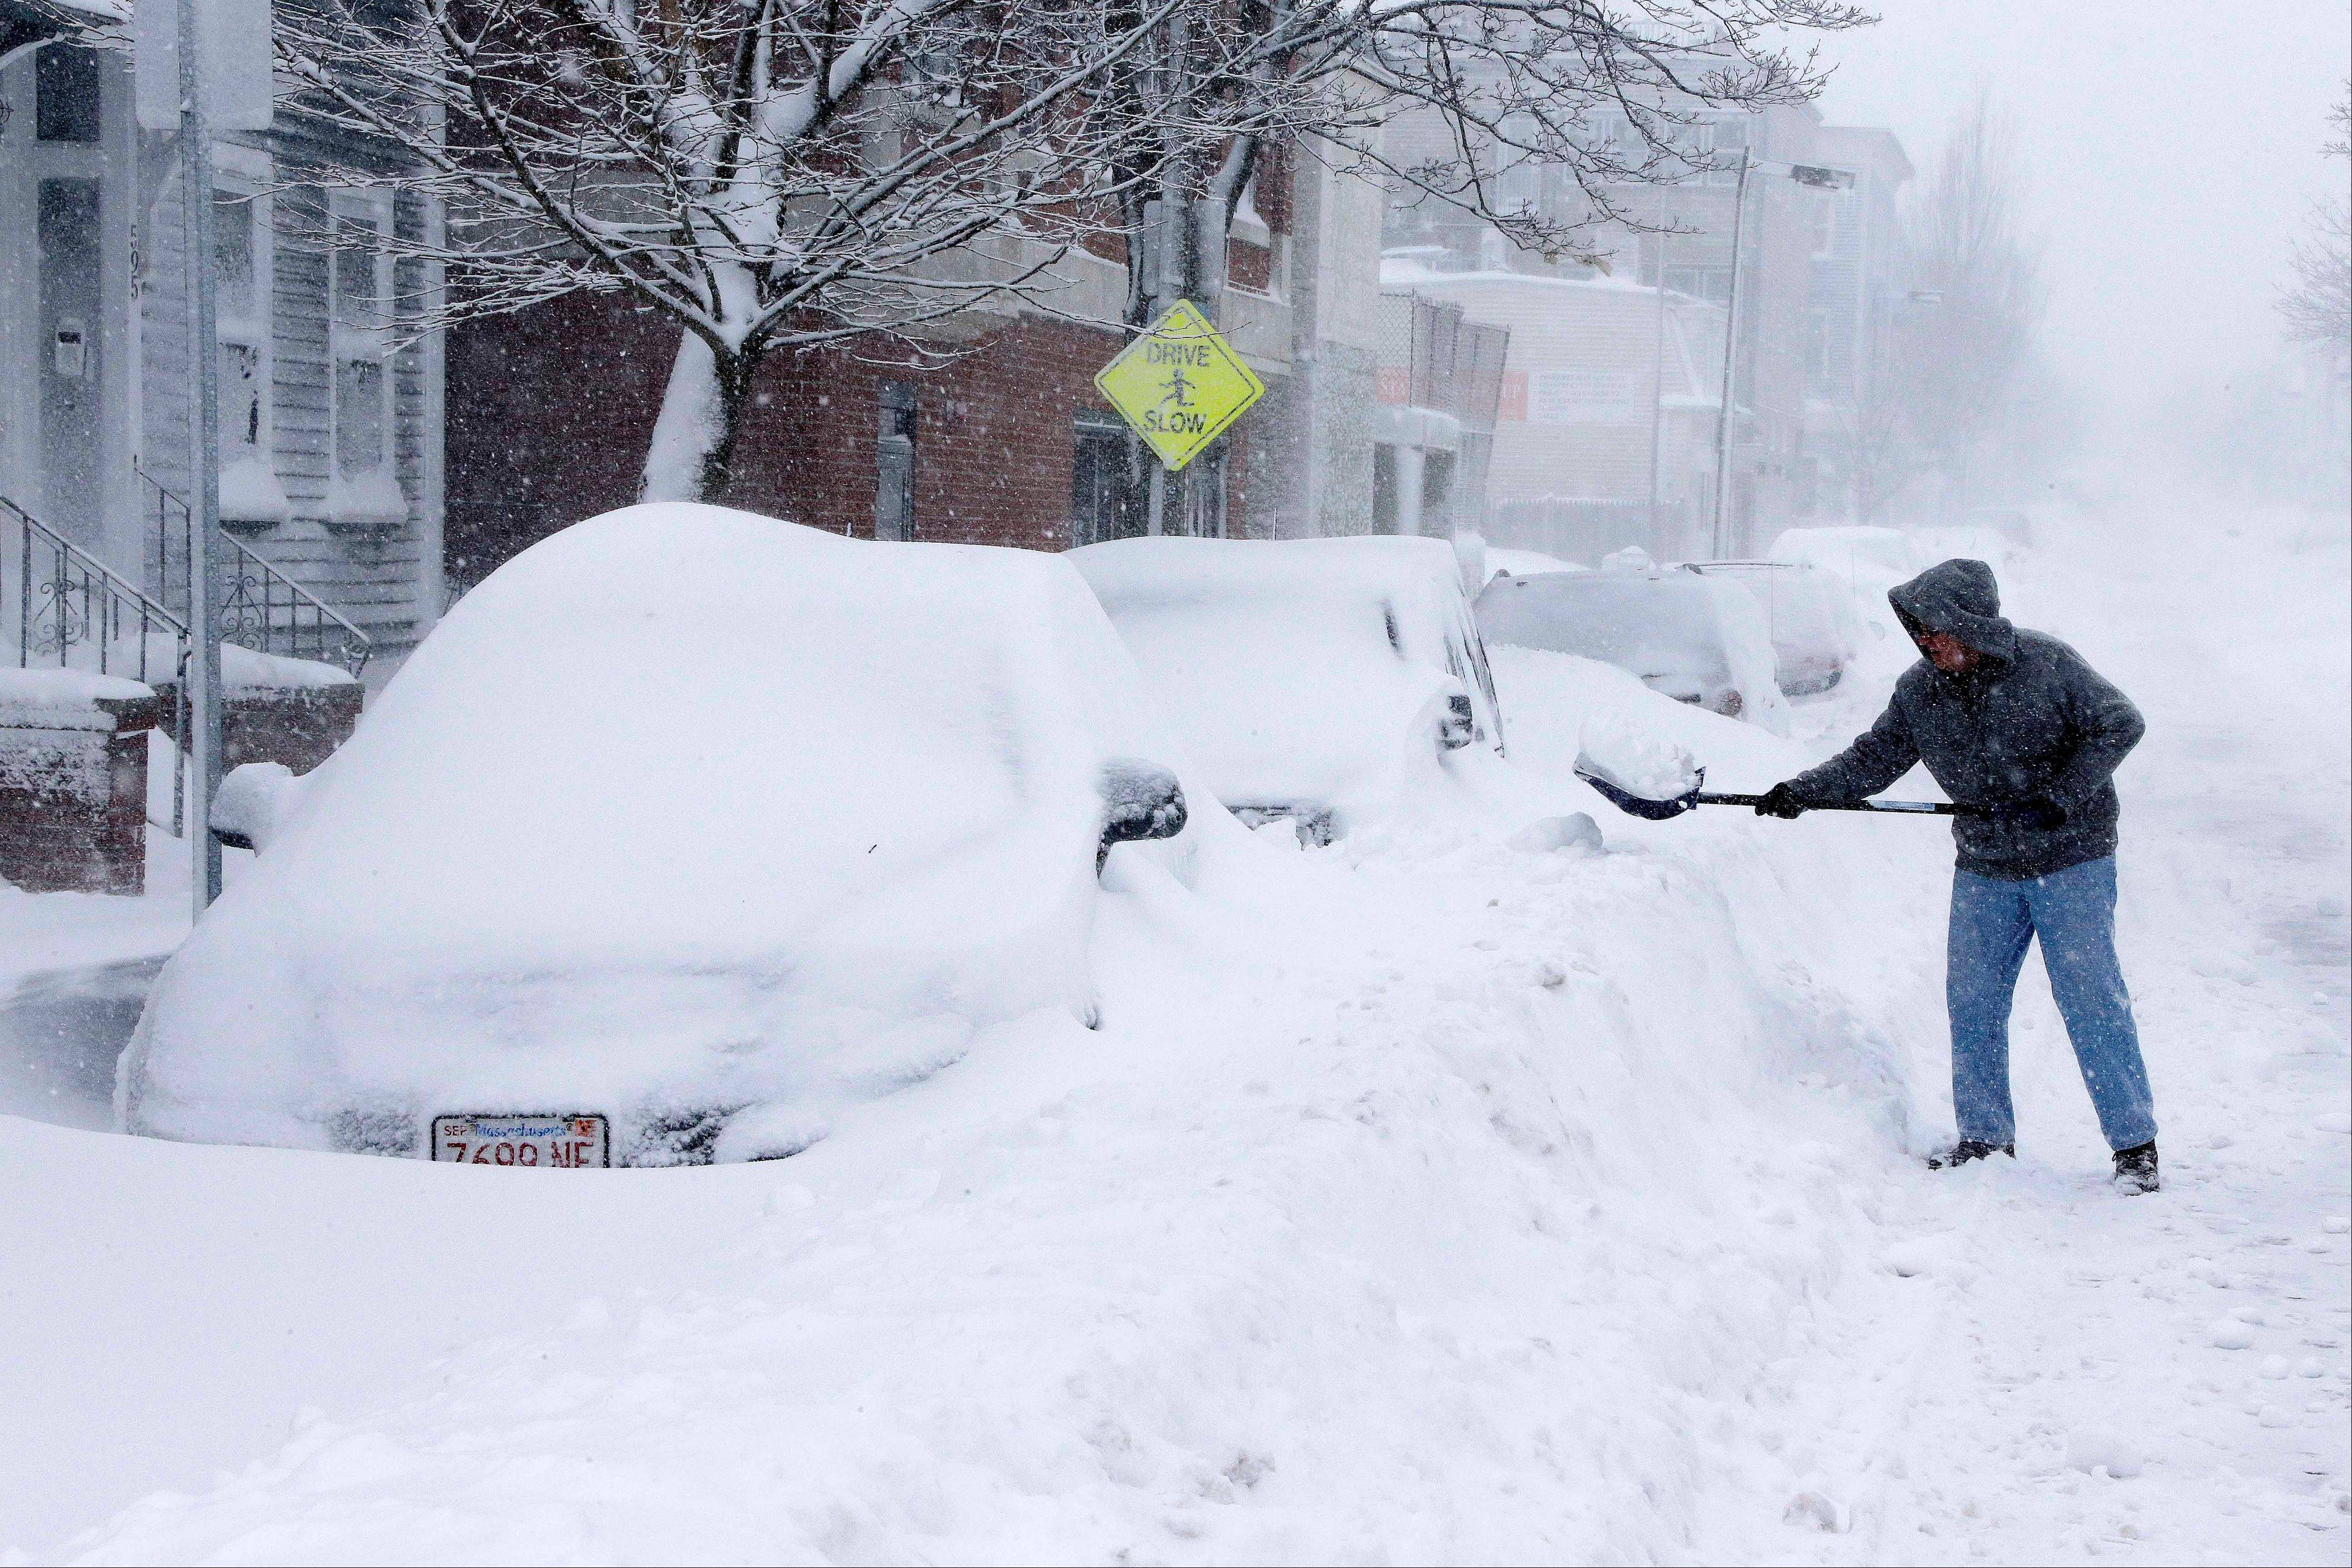 A man shovels out a car on Third street in the South Boston neighborhood of Boston, Saturday, Feb. 9, 2013. A behemoth storm packing hurricane-force wind gusts and blizzard conditions swept through the Northeast on Saturday, dumping more than 2 feet of snow on New England and knocking out power to 650,000 homes and businesses.